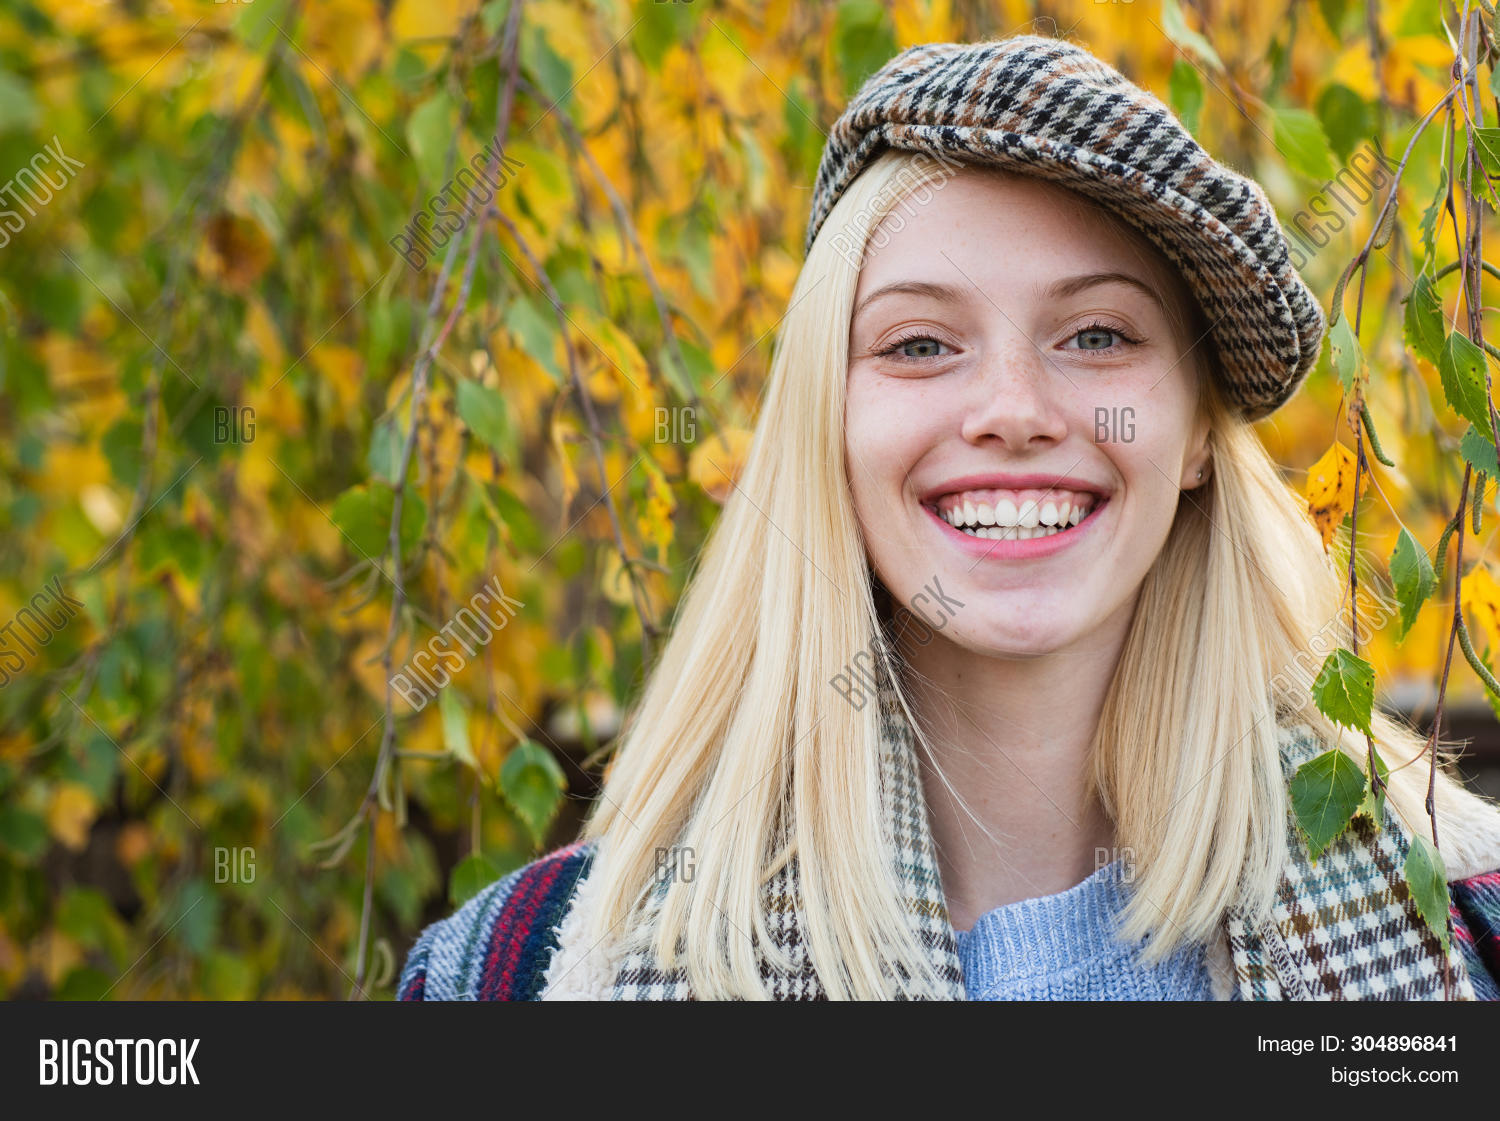 Fancy Girl. Woman Wear Checkered Clothes Nature Background. Girl Wear Kepi. Fall Fashion Accessory.